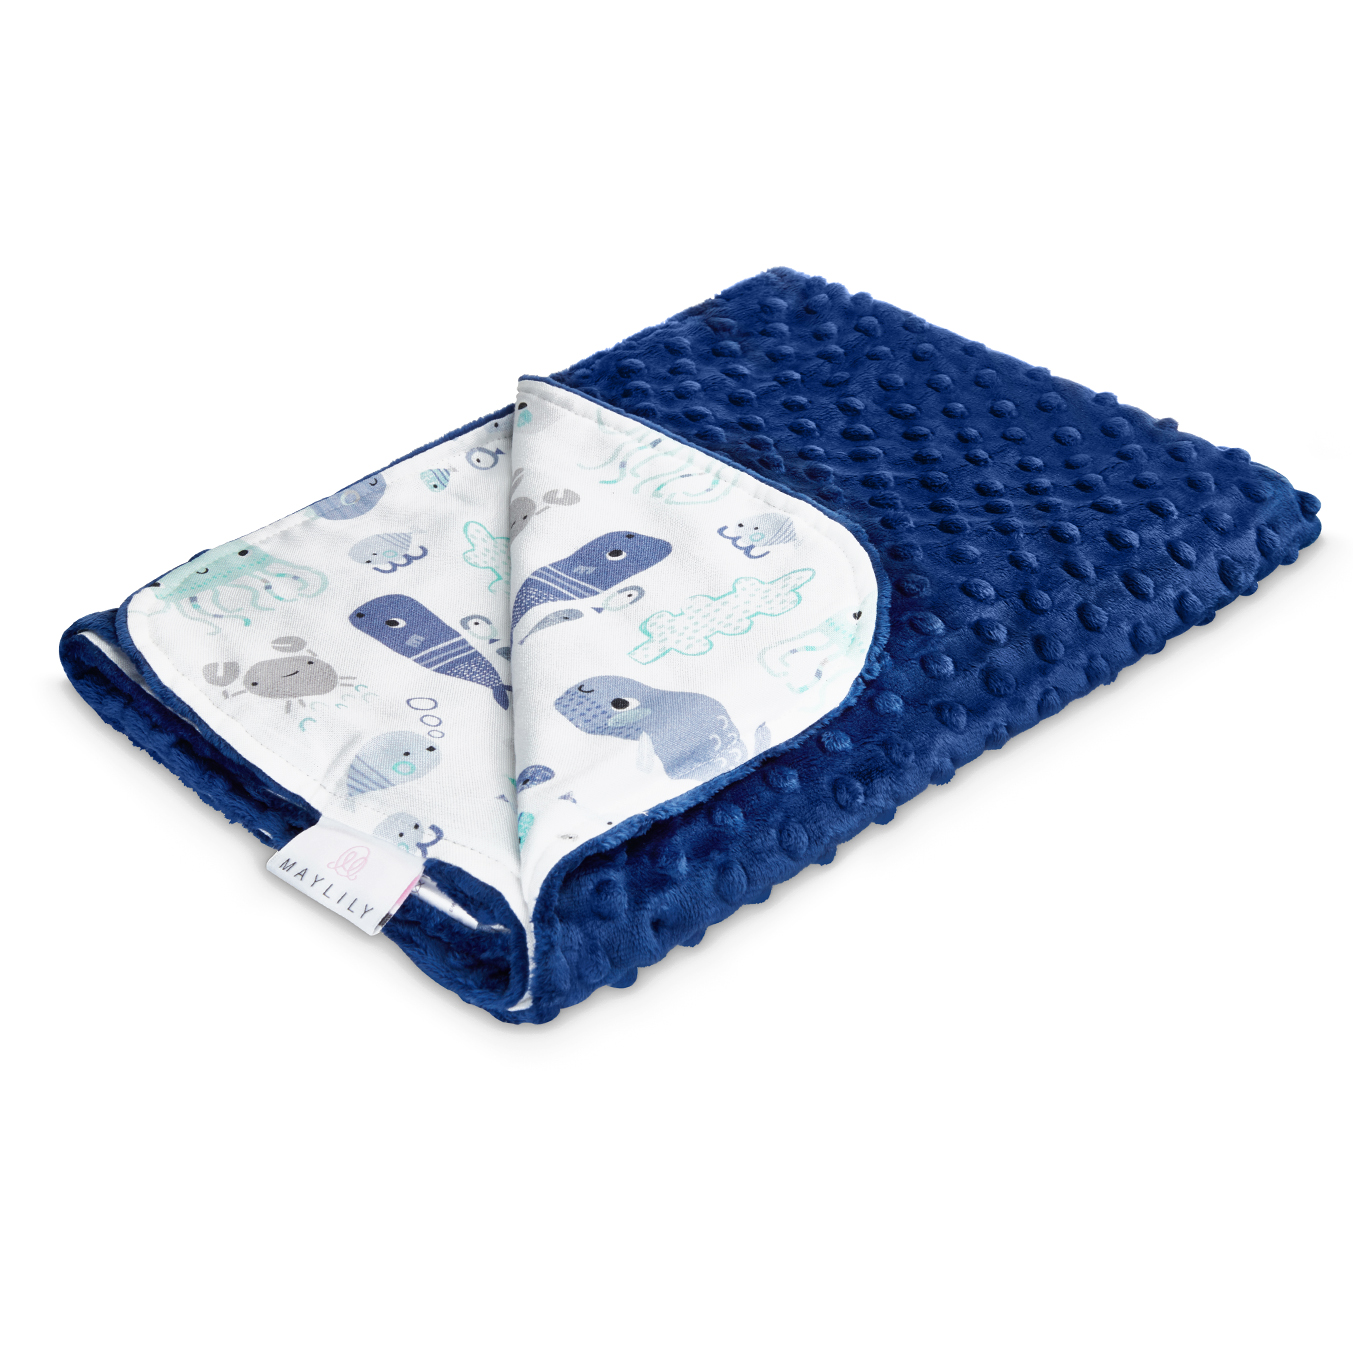 Light bamboo blanket Sea friends navy